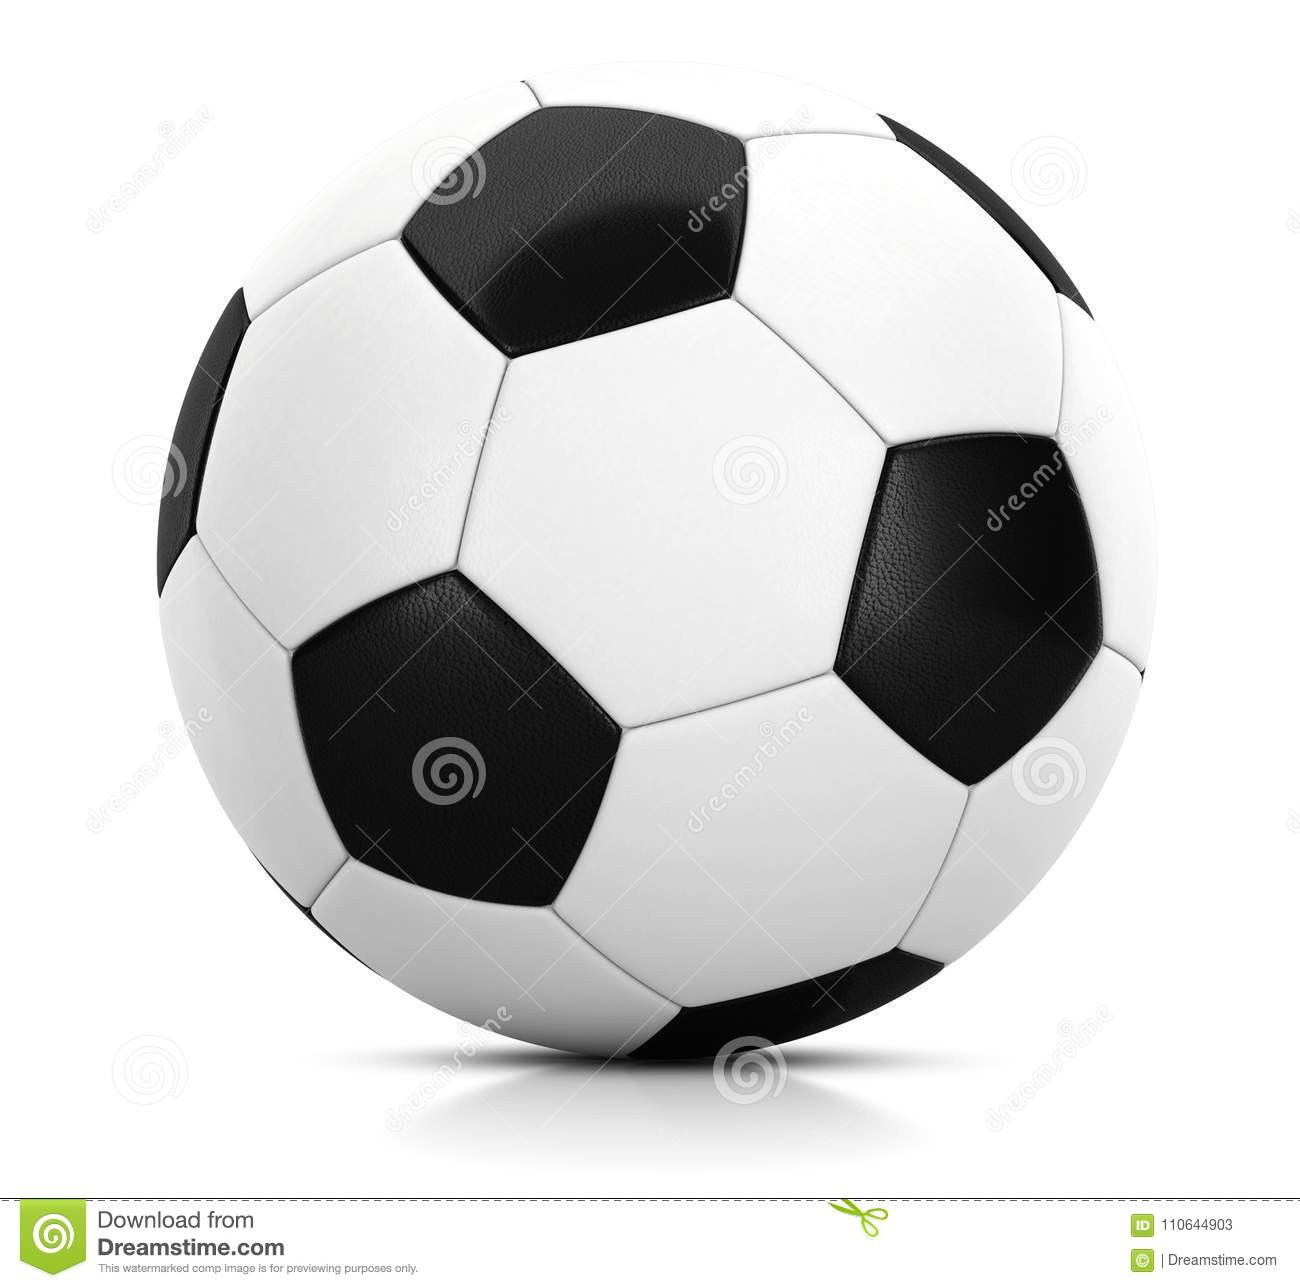 Classic soccer ball in studio with white background 3D illustration